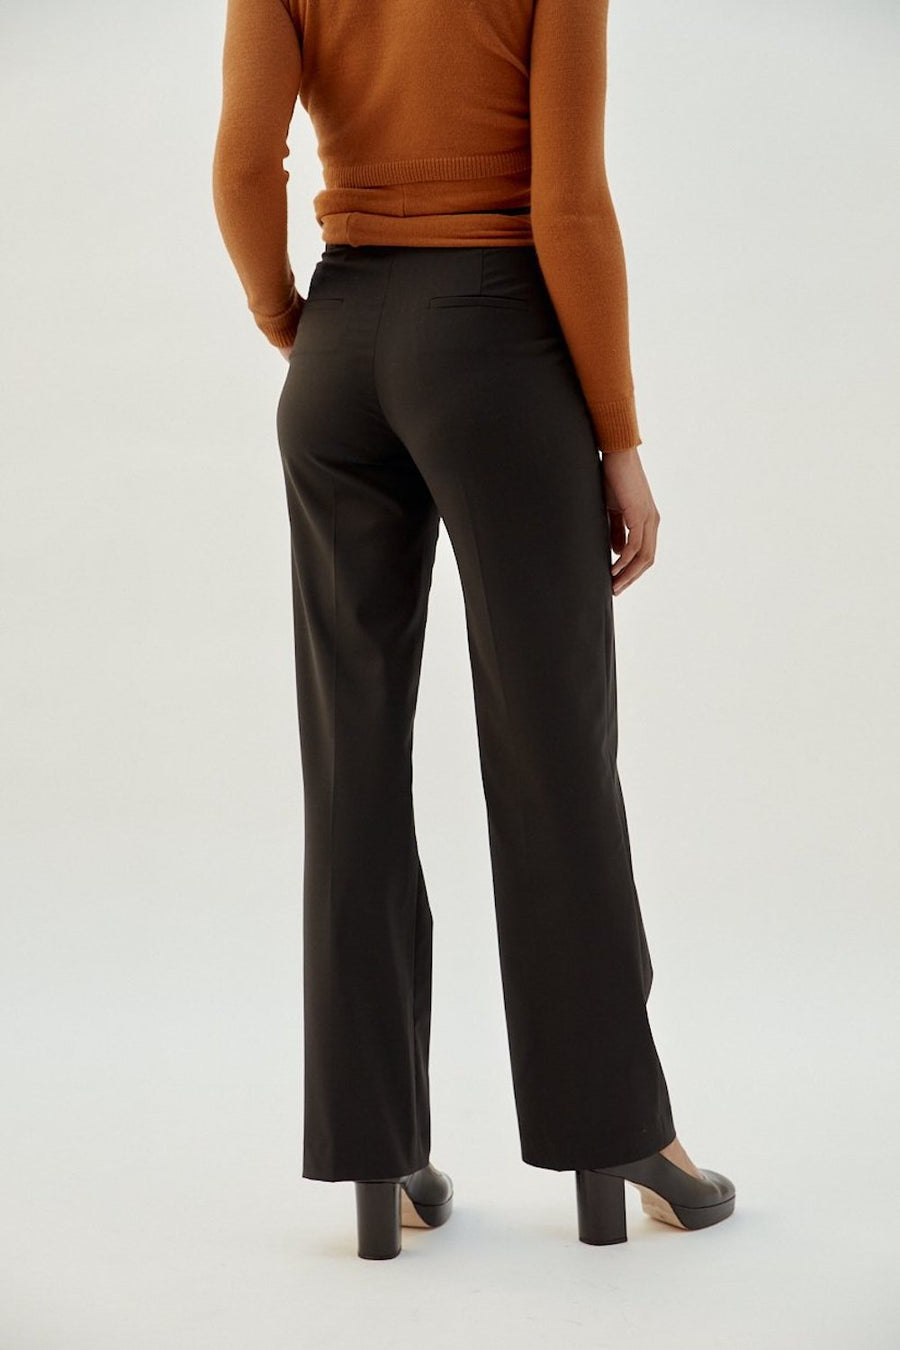 Camille Pant | Black | pants NZ | MUSIER PARIS NZ | Black Box Boutique Auckland | Womens Fashion NZ